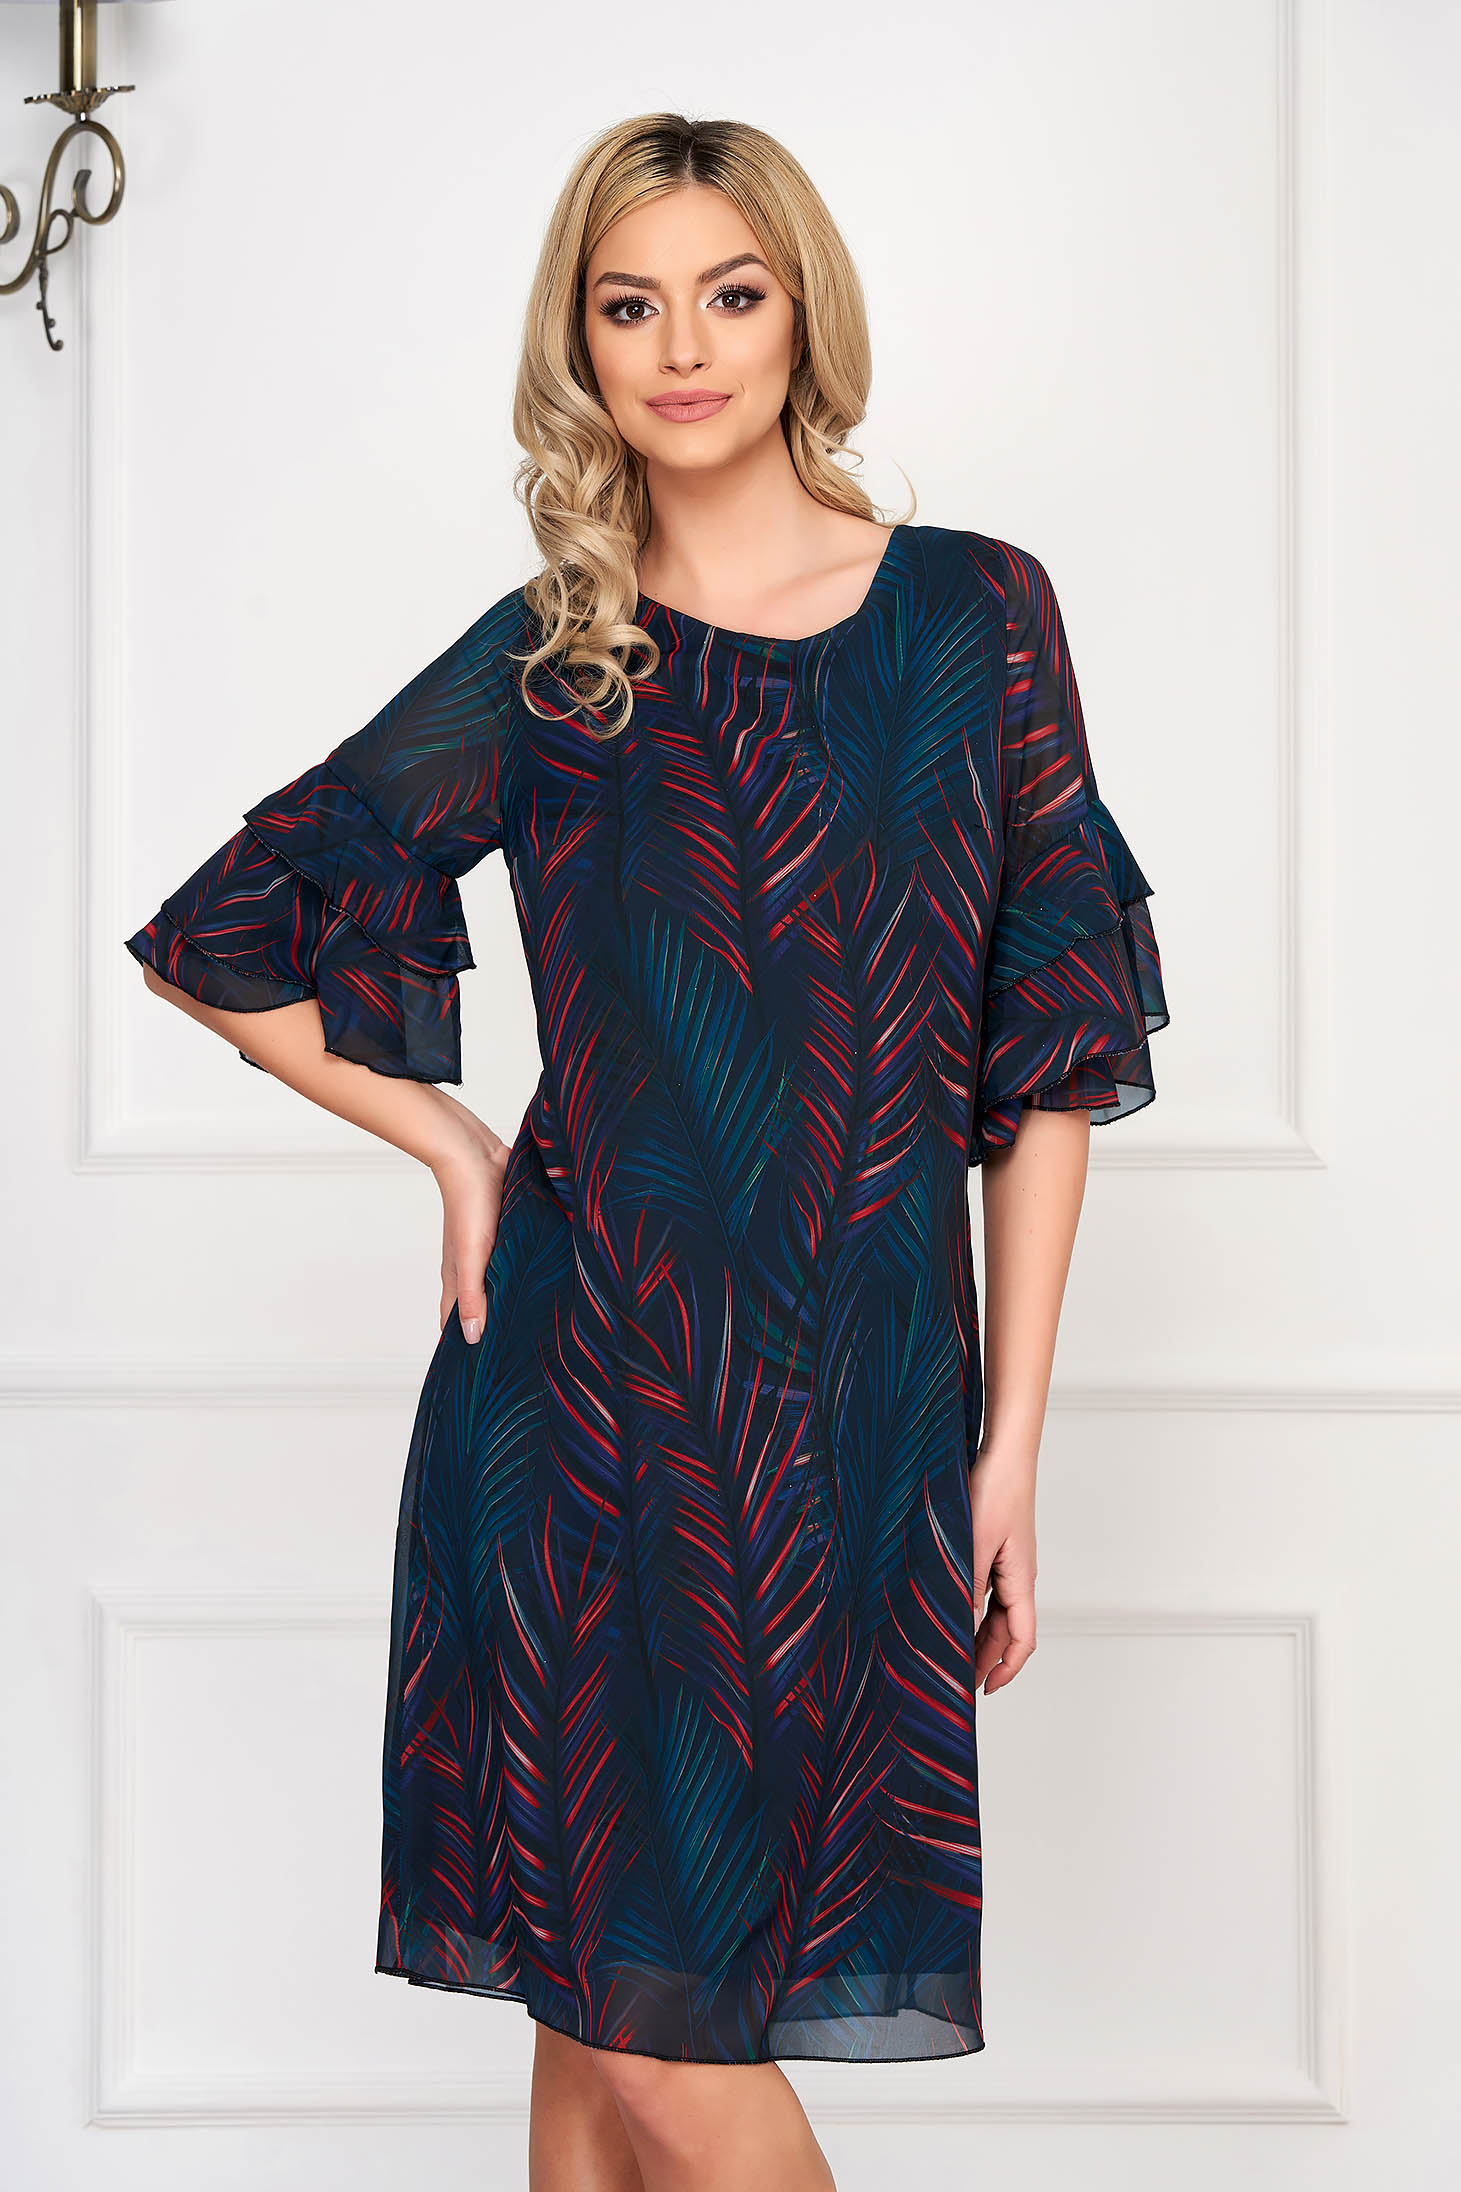 Black dress daily short cut a-line bell sleeves with graphic details neckline